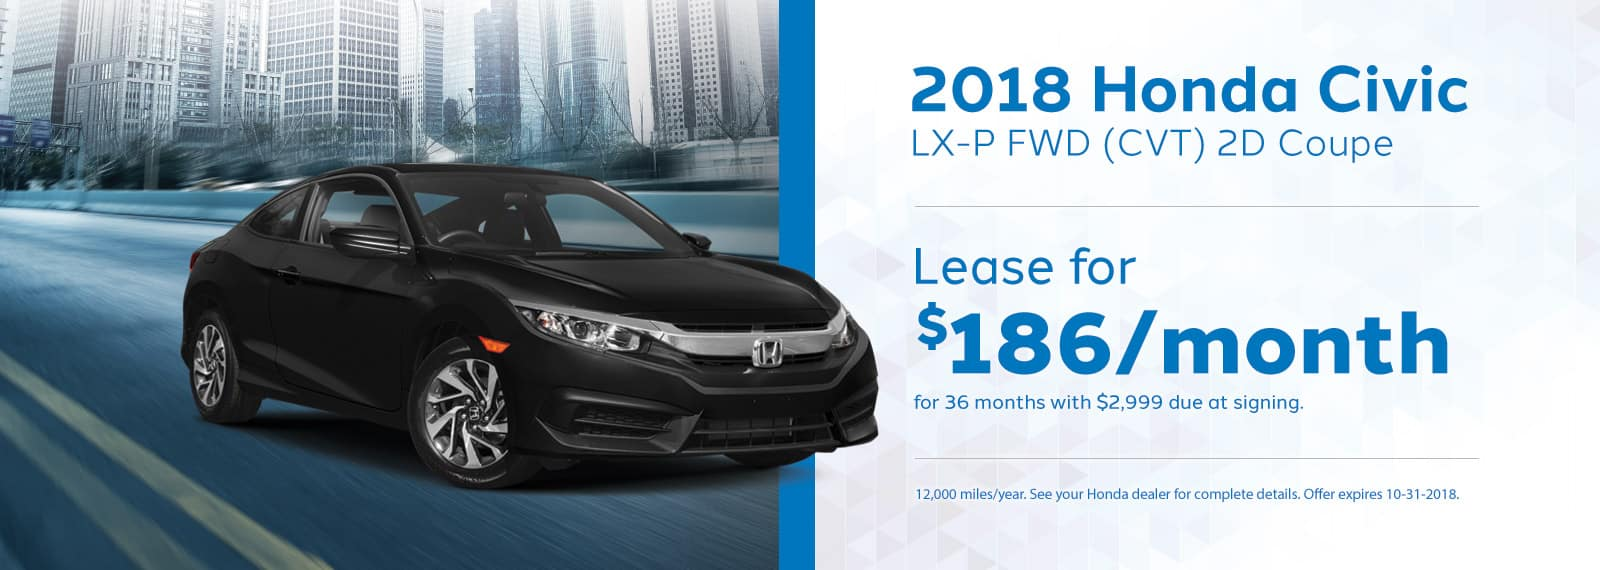 Civic Coupe Genthe Honda Lease Offer September 2018 Homepage